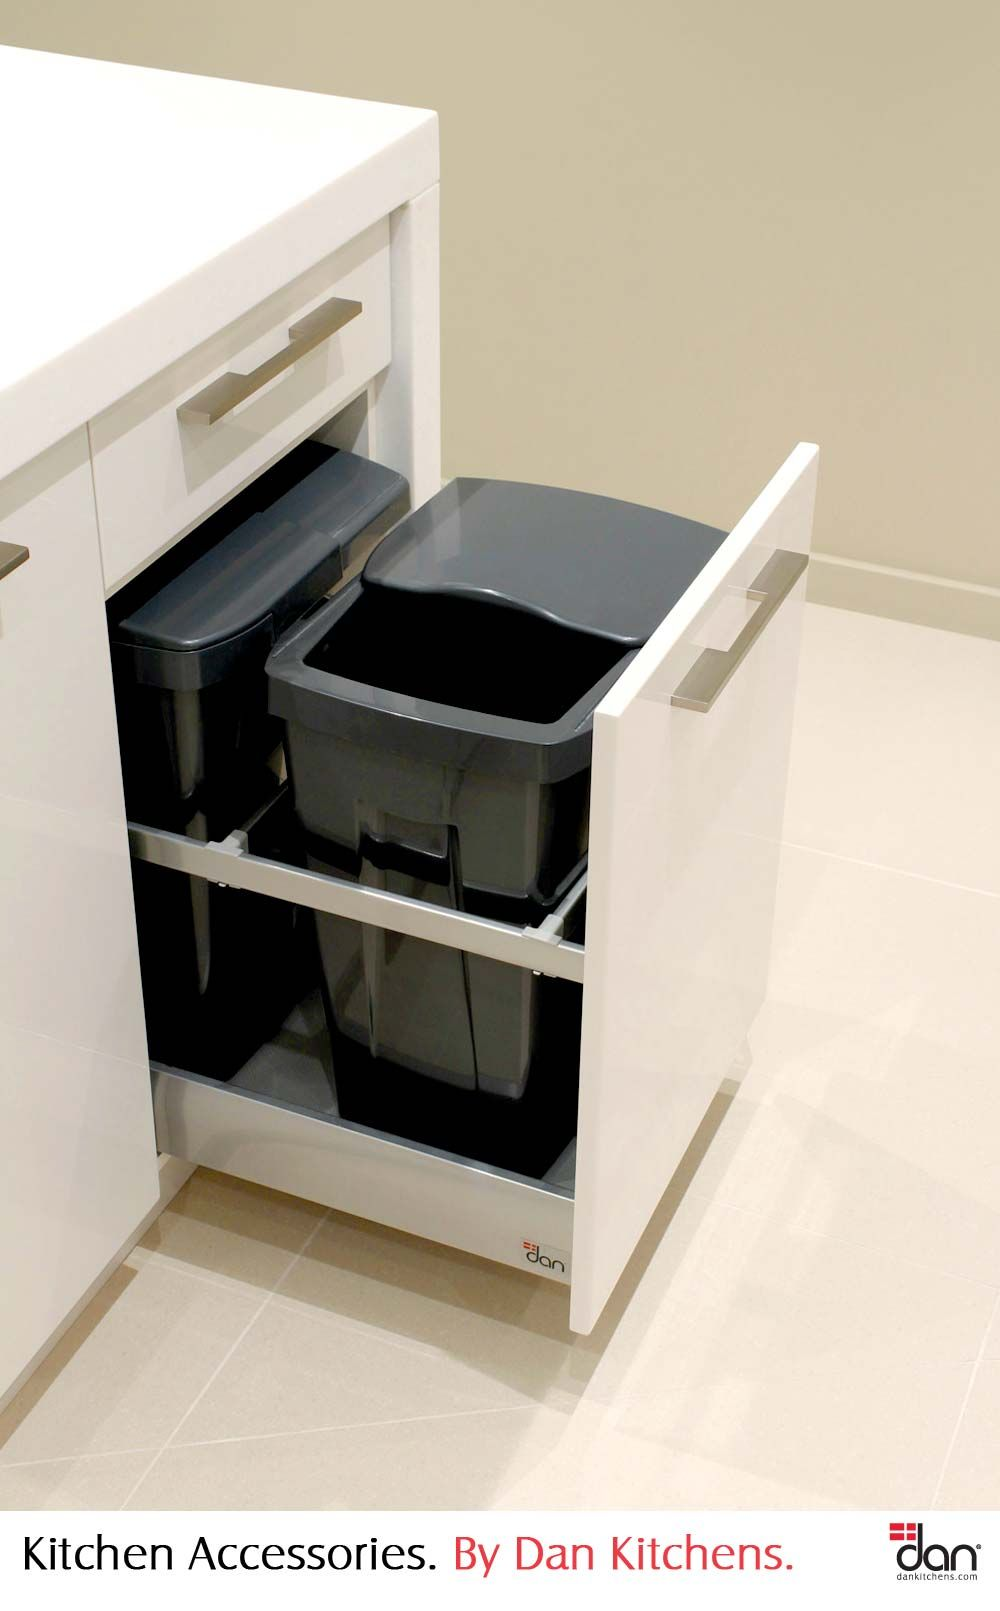 Bin Drawer System U003eu003eu003e Who Wants To See And Smell A Bin Out In The Open! Put  It In A Drawer, Away From Sight. Dan Kitchens Always Incorporates A Bin  Drawer ...